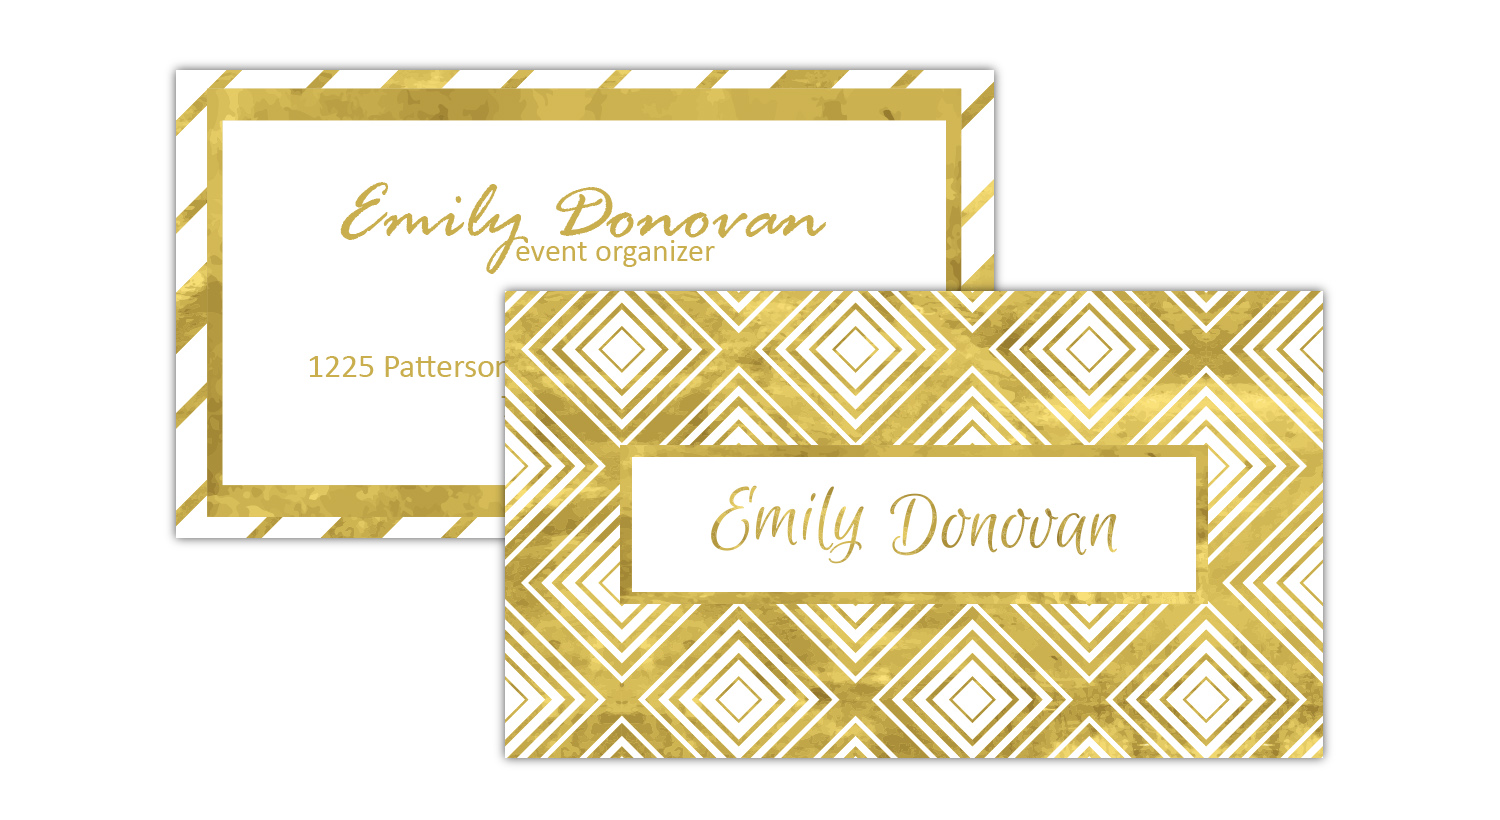 Gold foil stamping in business card.